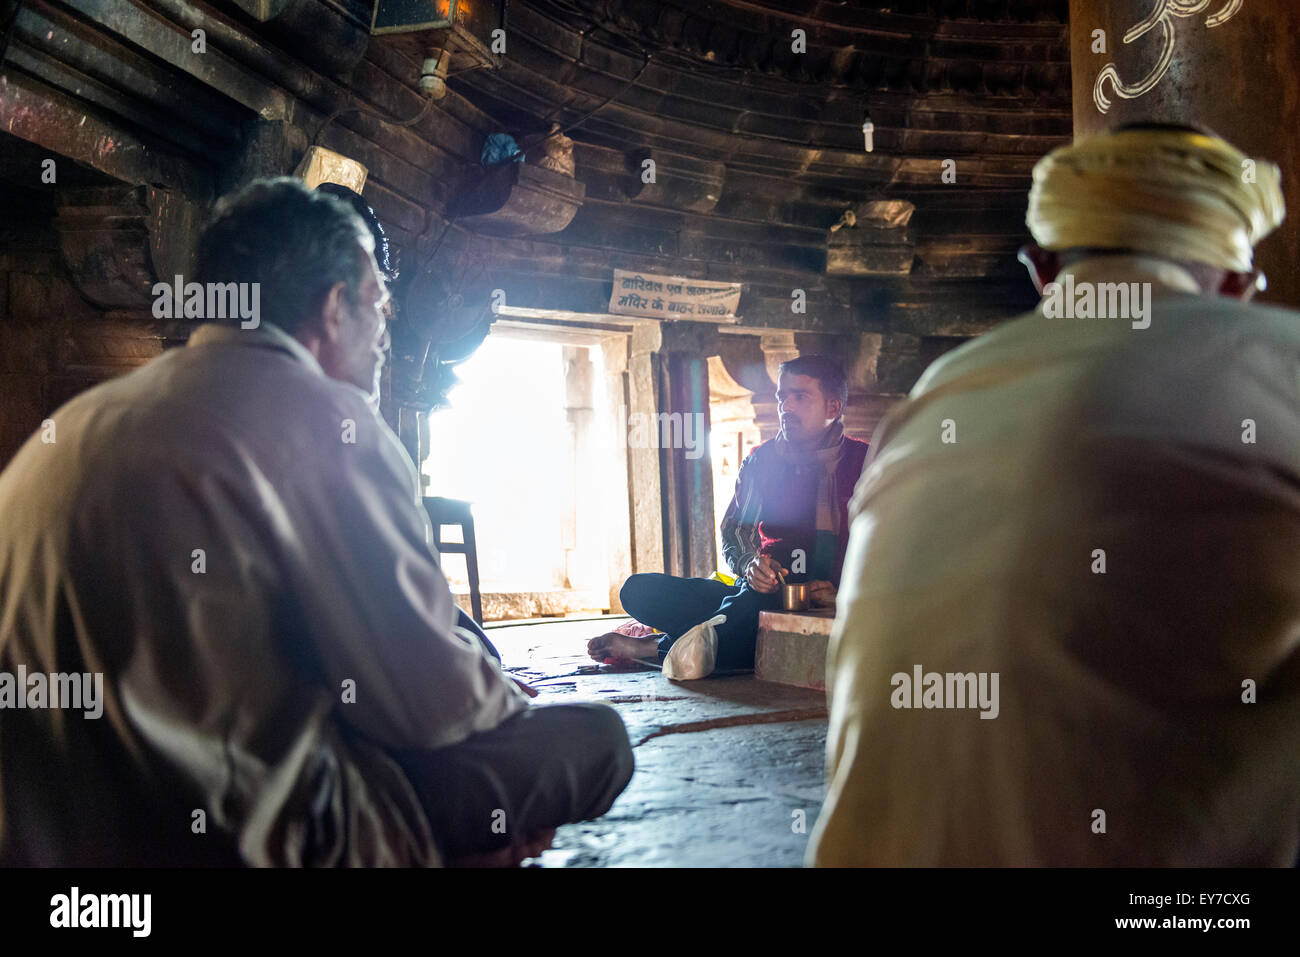 Religious rituals being performed inside a Hindu Temple in Khajuraho, Madhya Pradesh, India - Stock Image